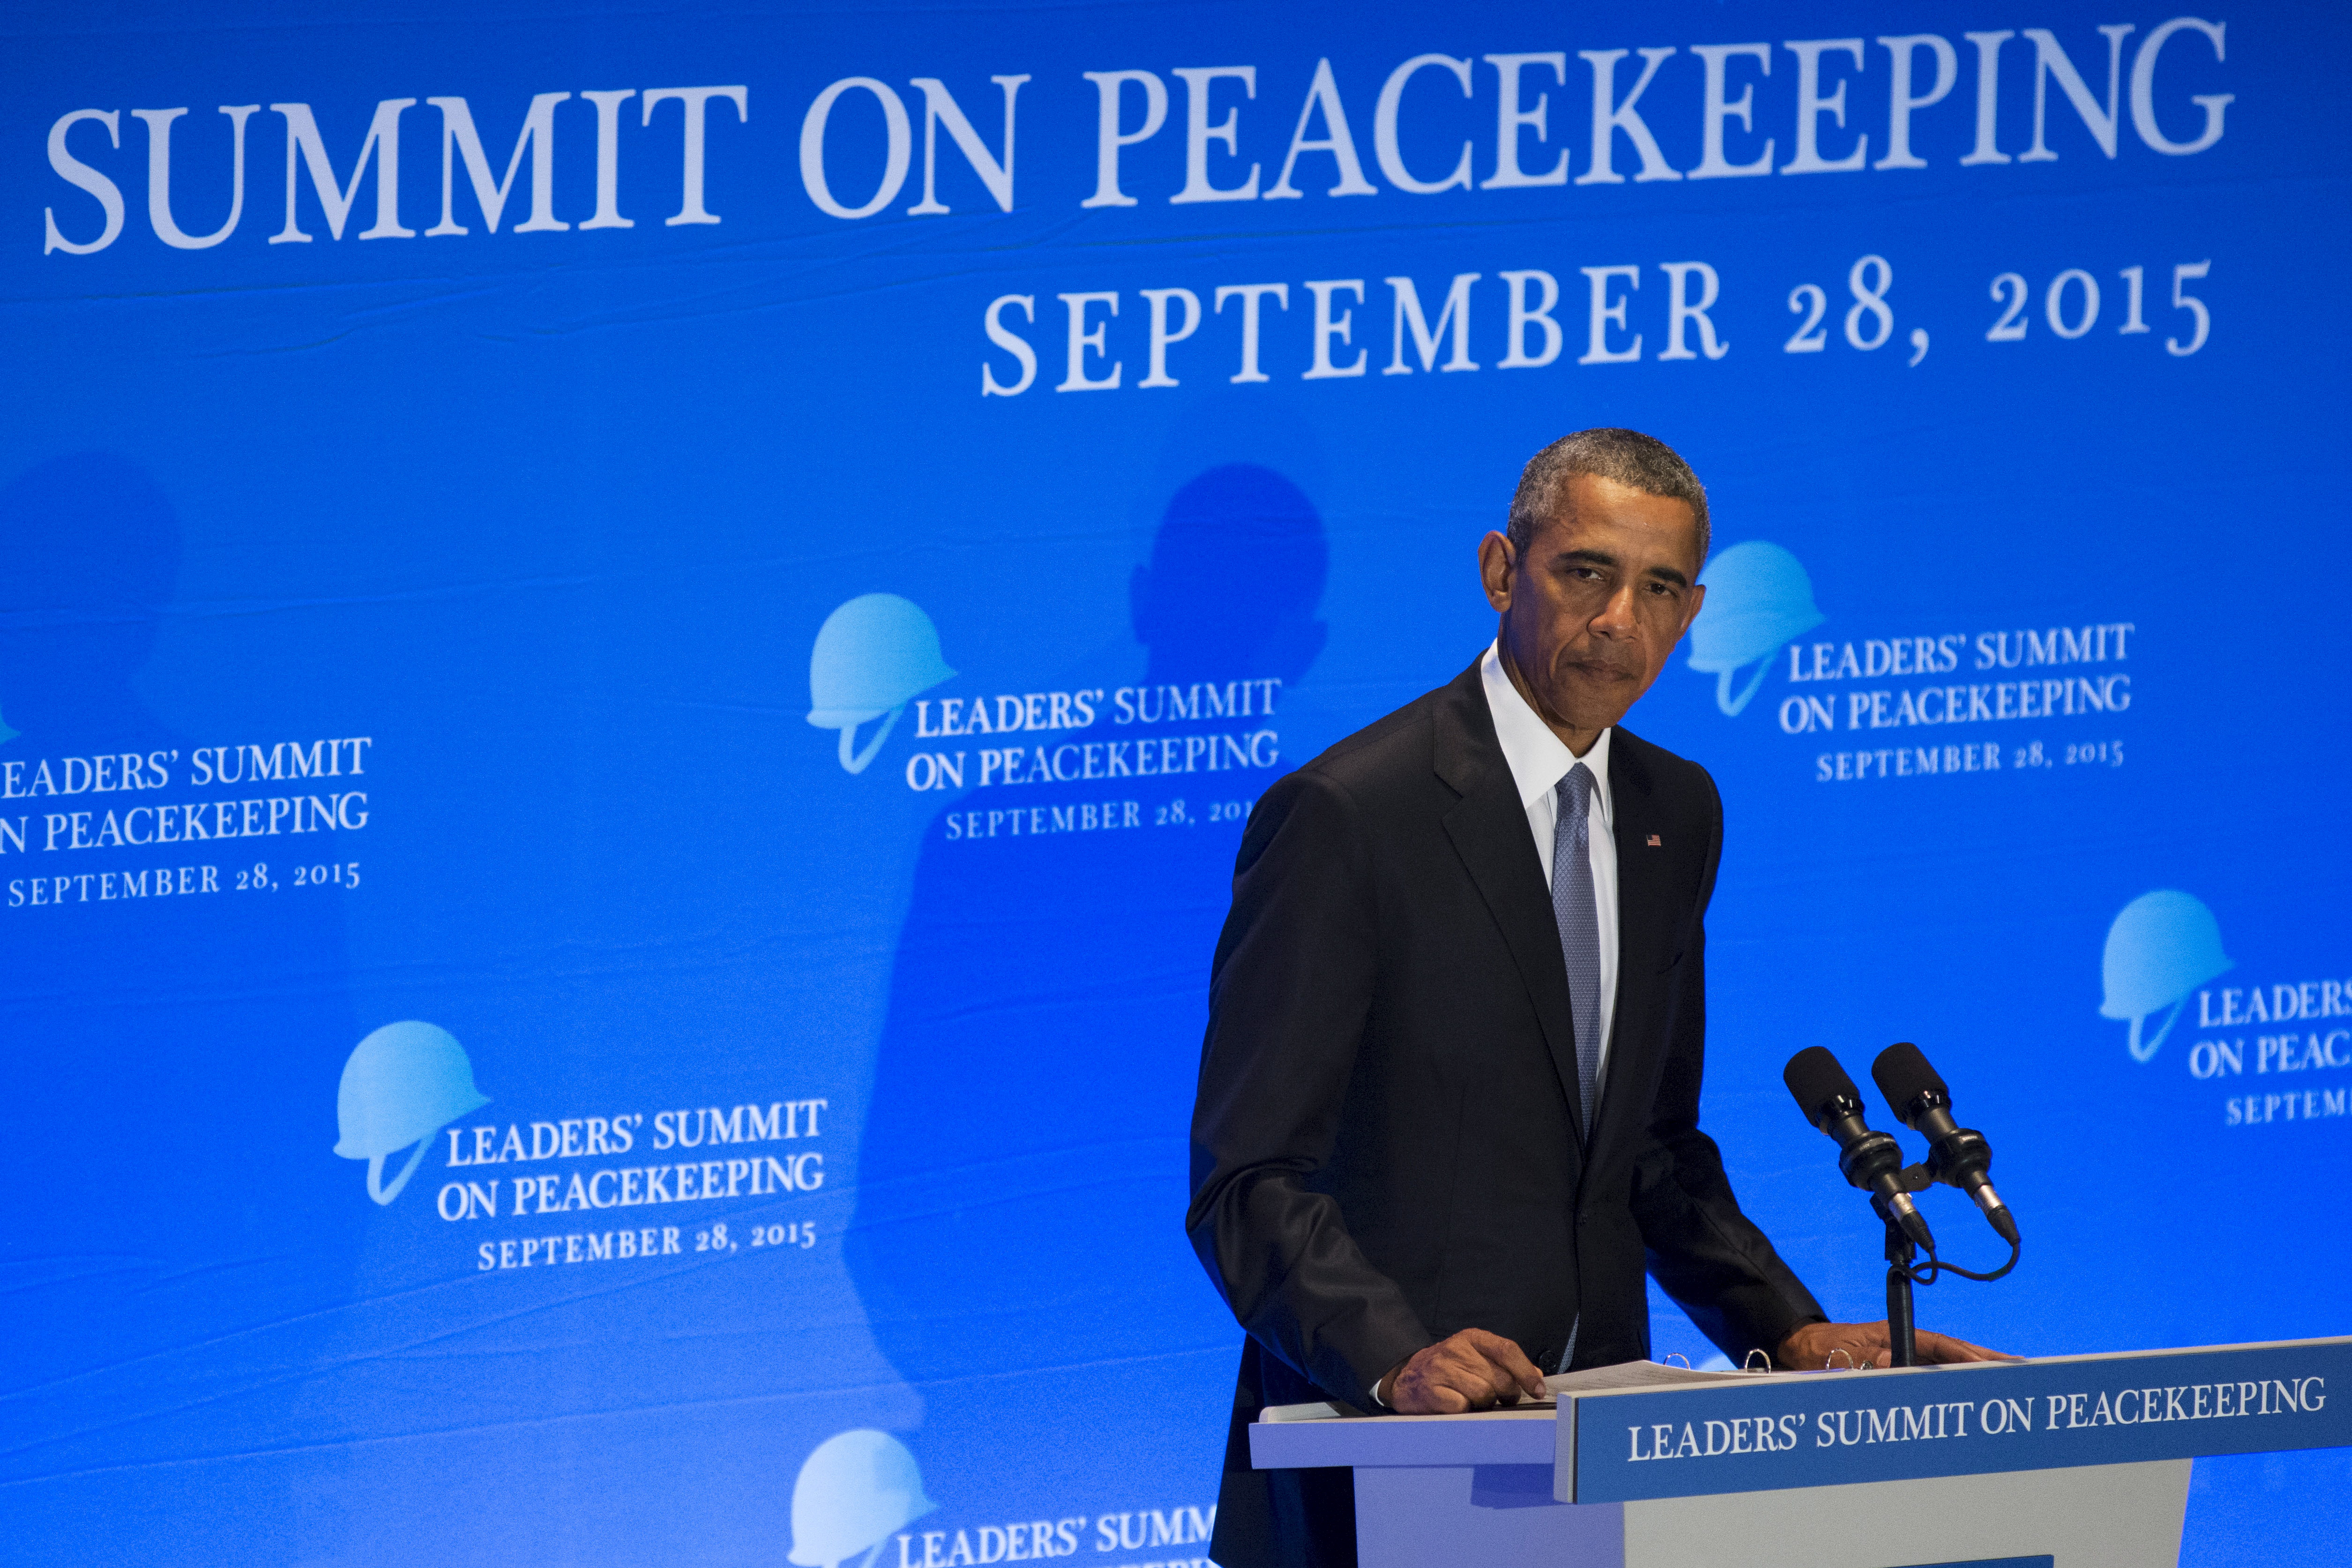 U.S. President Barack Obama delivers remarks during a Leaders Summit on Peacekeeping to coincide with the United Nations General Assembly at the United Nations in Manhattan, New York September 28, 2015.